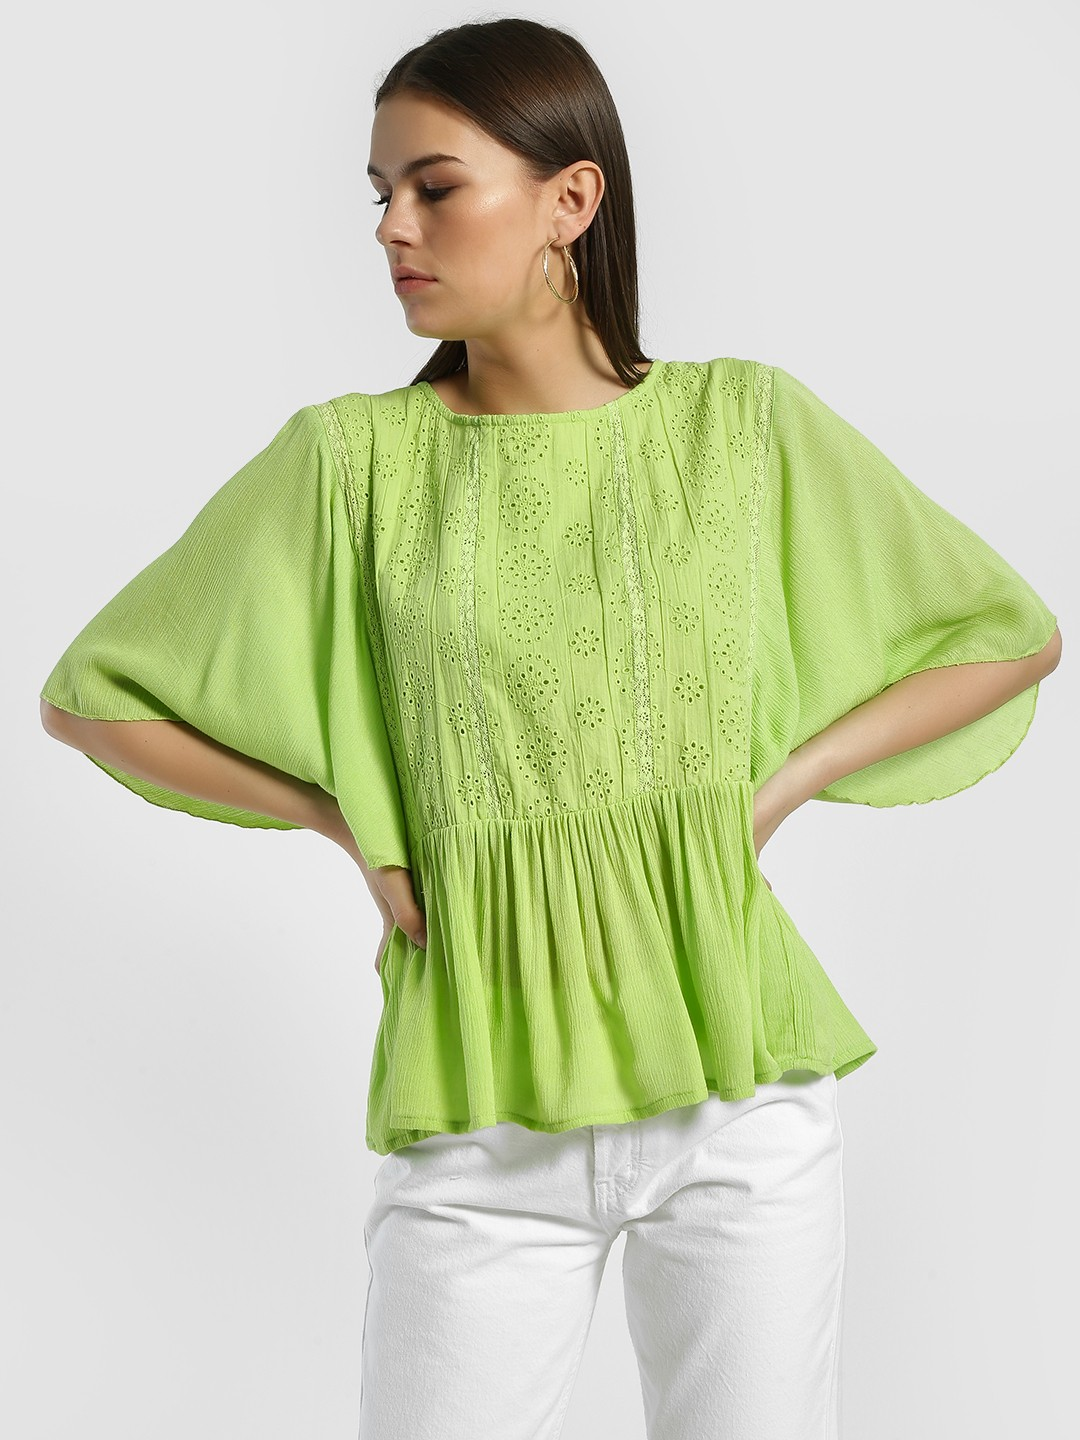 Rena Love Green Broderie Detail Blouse 1